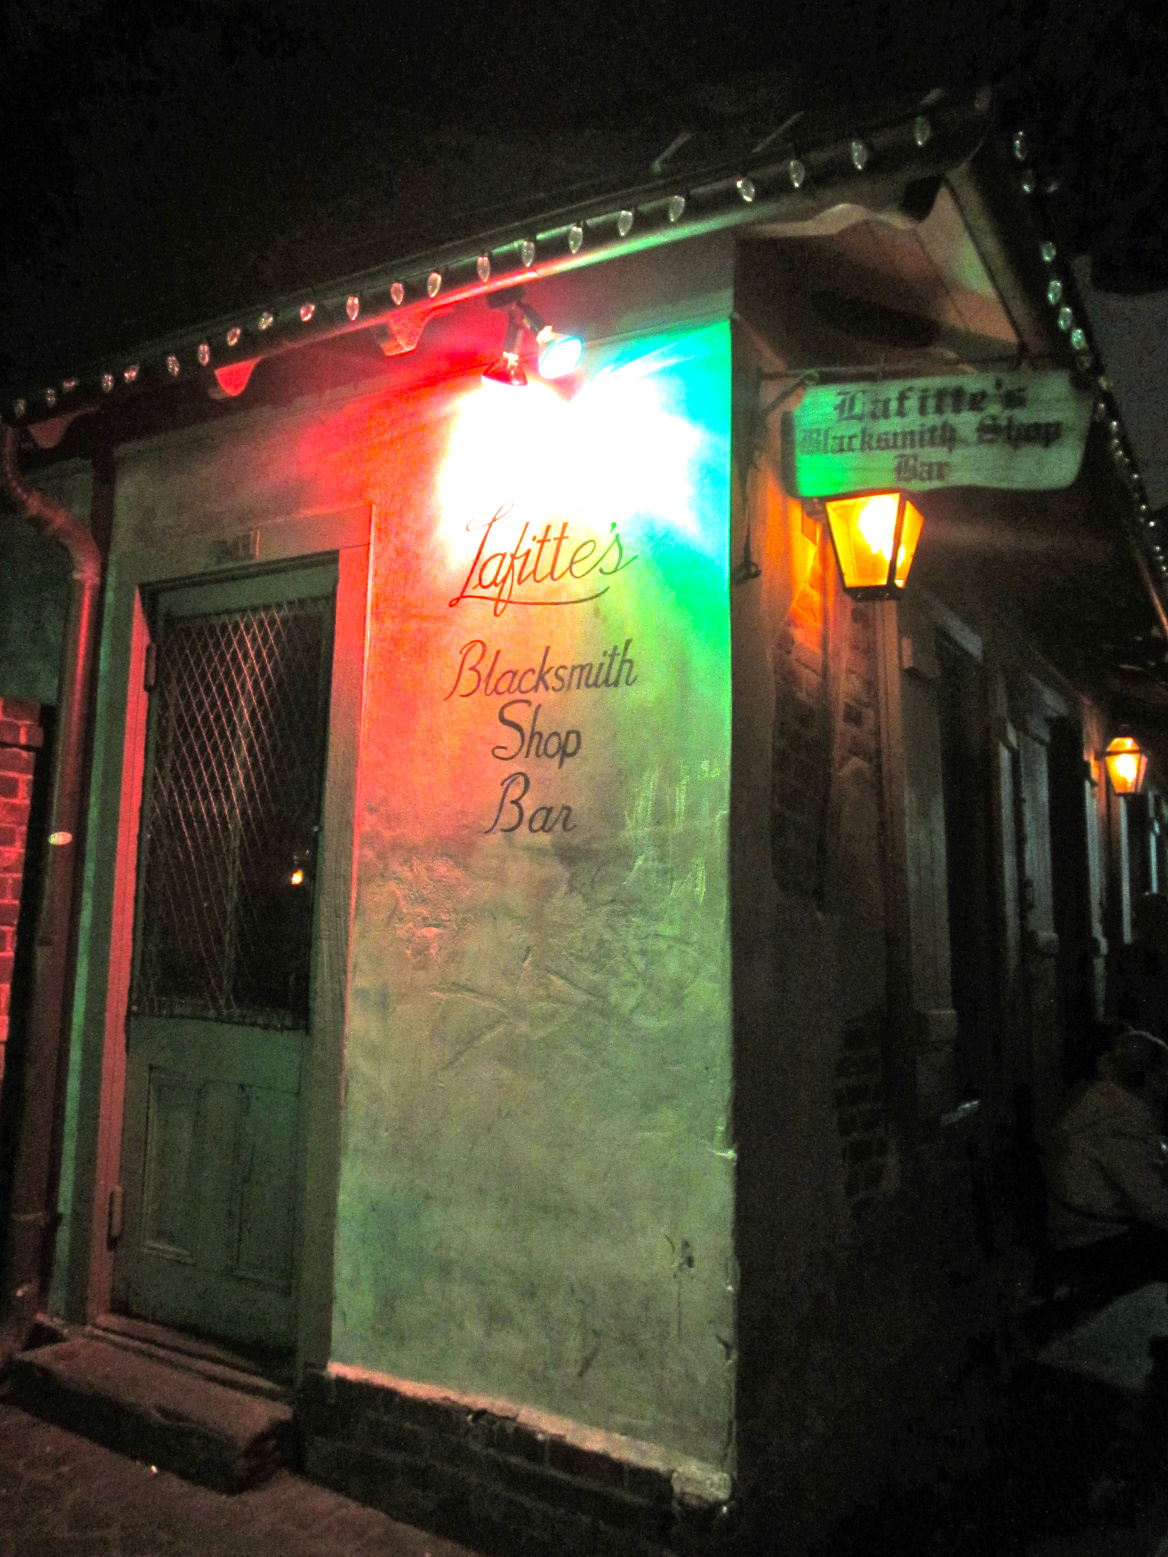 Finally, one cannot forget to mention the famed Lafitte's Blacksmith Shop. My friends and I walked past it one evening and made a mental note to stop back, not knowing it was well-known as one of the oldest bars in the country. The place looks as old as it must be, with dim lighting and many little candles twinkling around the tables and piano that always seemed to be in use. I went back on my last night and enjoyed a drink while chatting with fellow travelers and listening to the live music of someone banging on the piano while customers sang and shouted along.